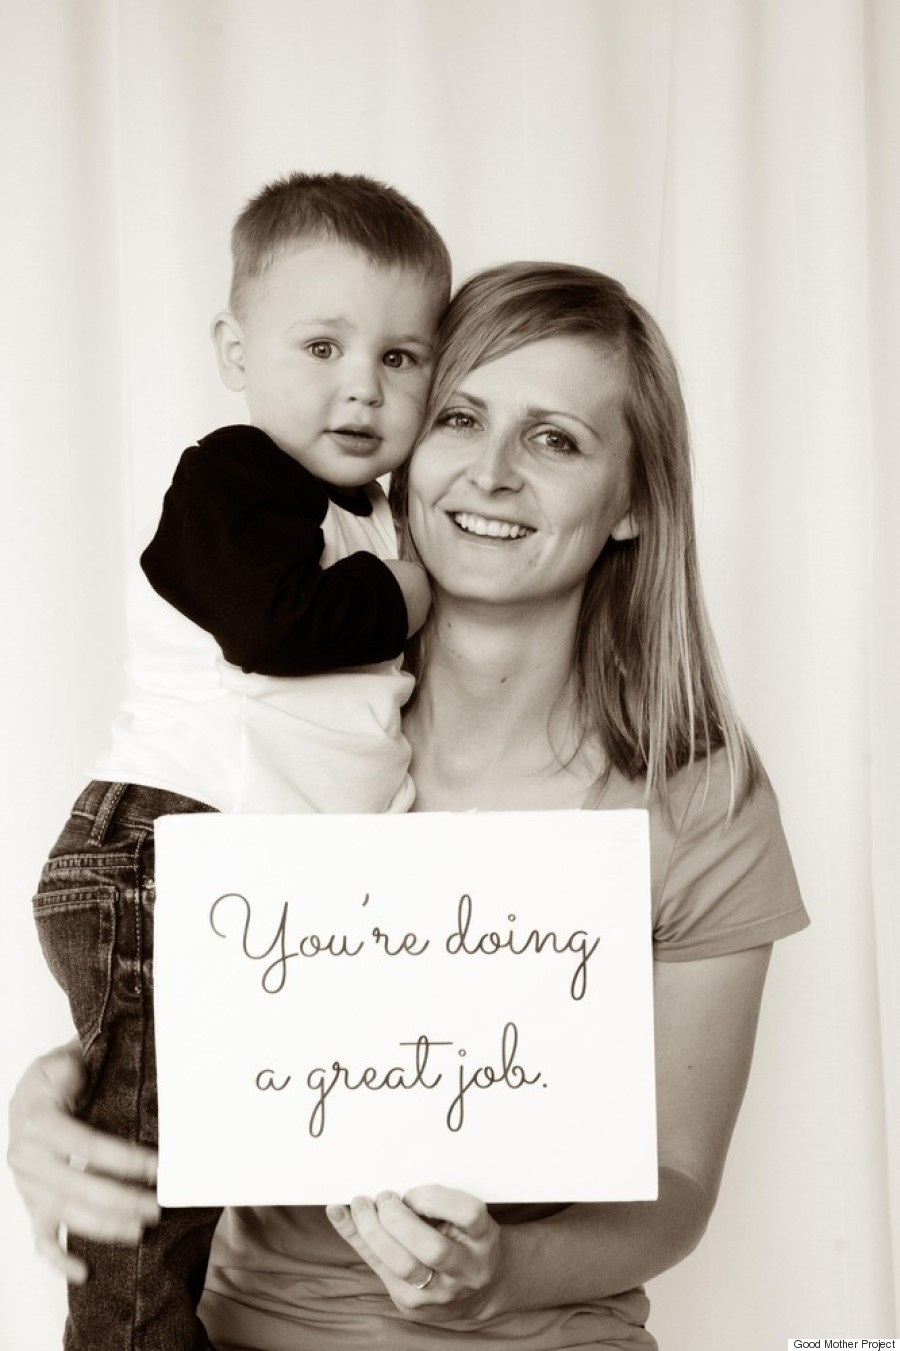 16 Moms Share Supportive Messages For Others Struggling With ...